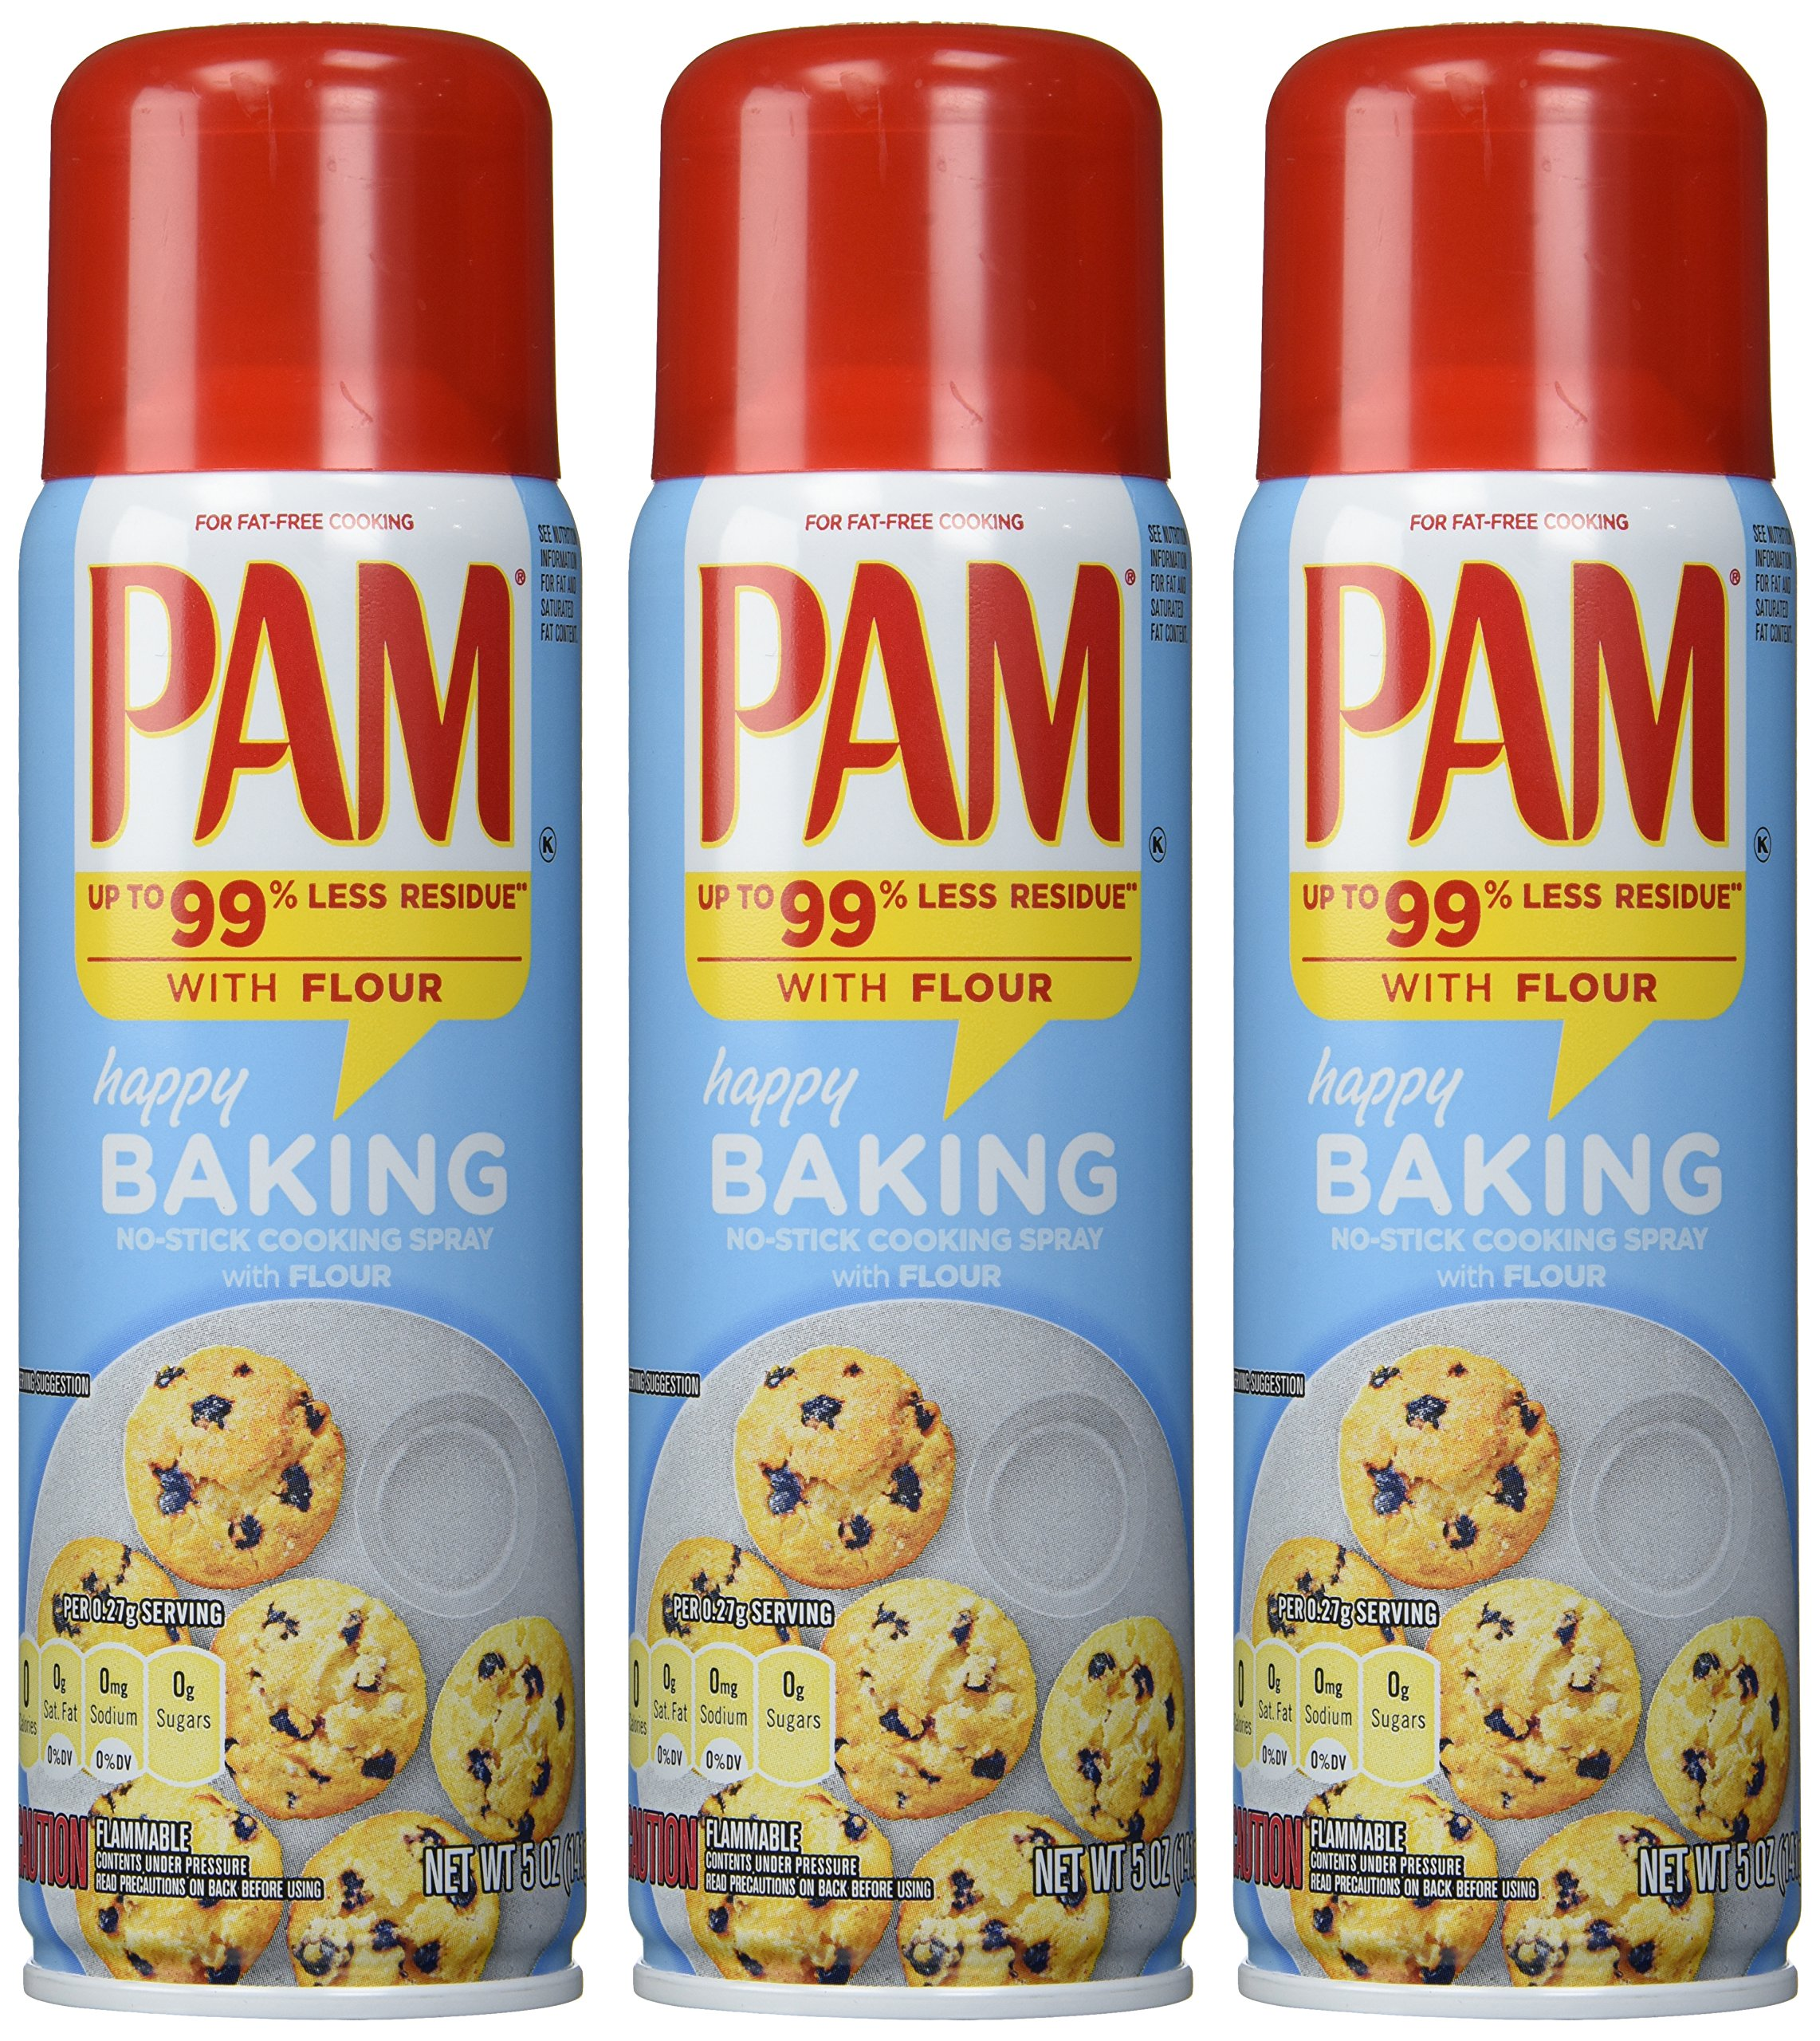 PAM Baking Spray with Flour 5 fl oz PACK , 15 Ounce, (Pack of 3)